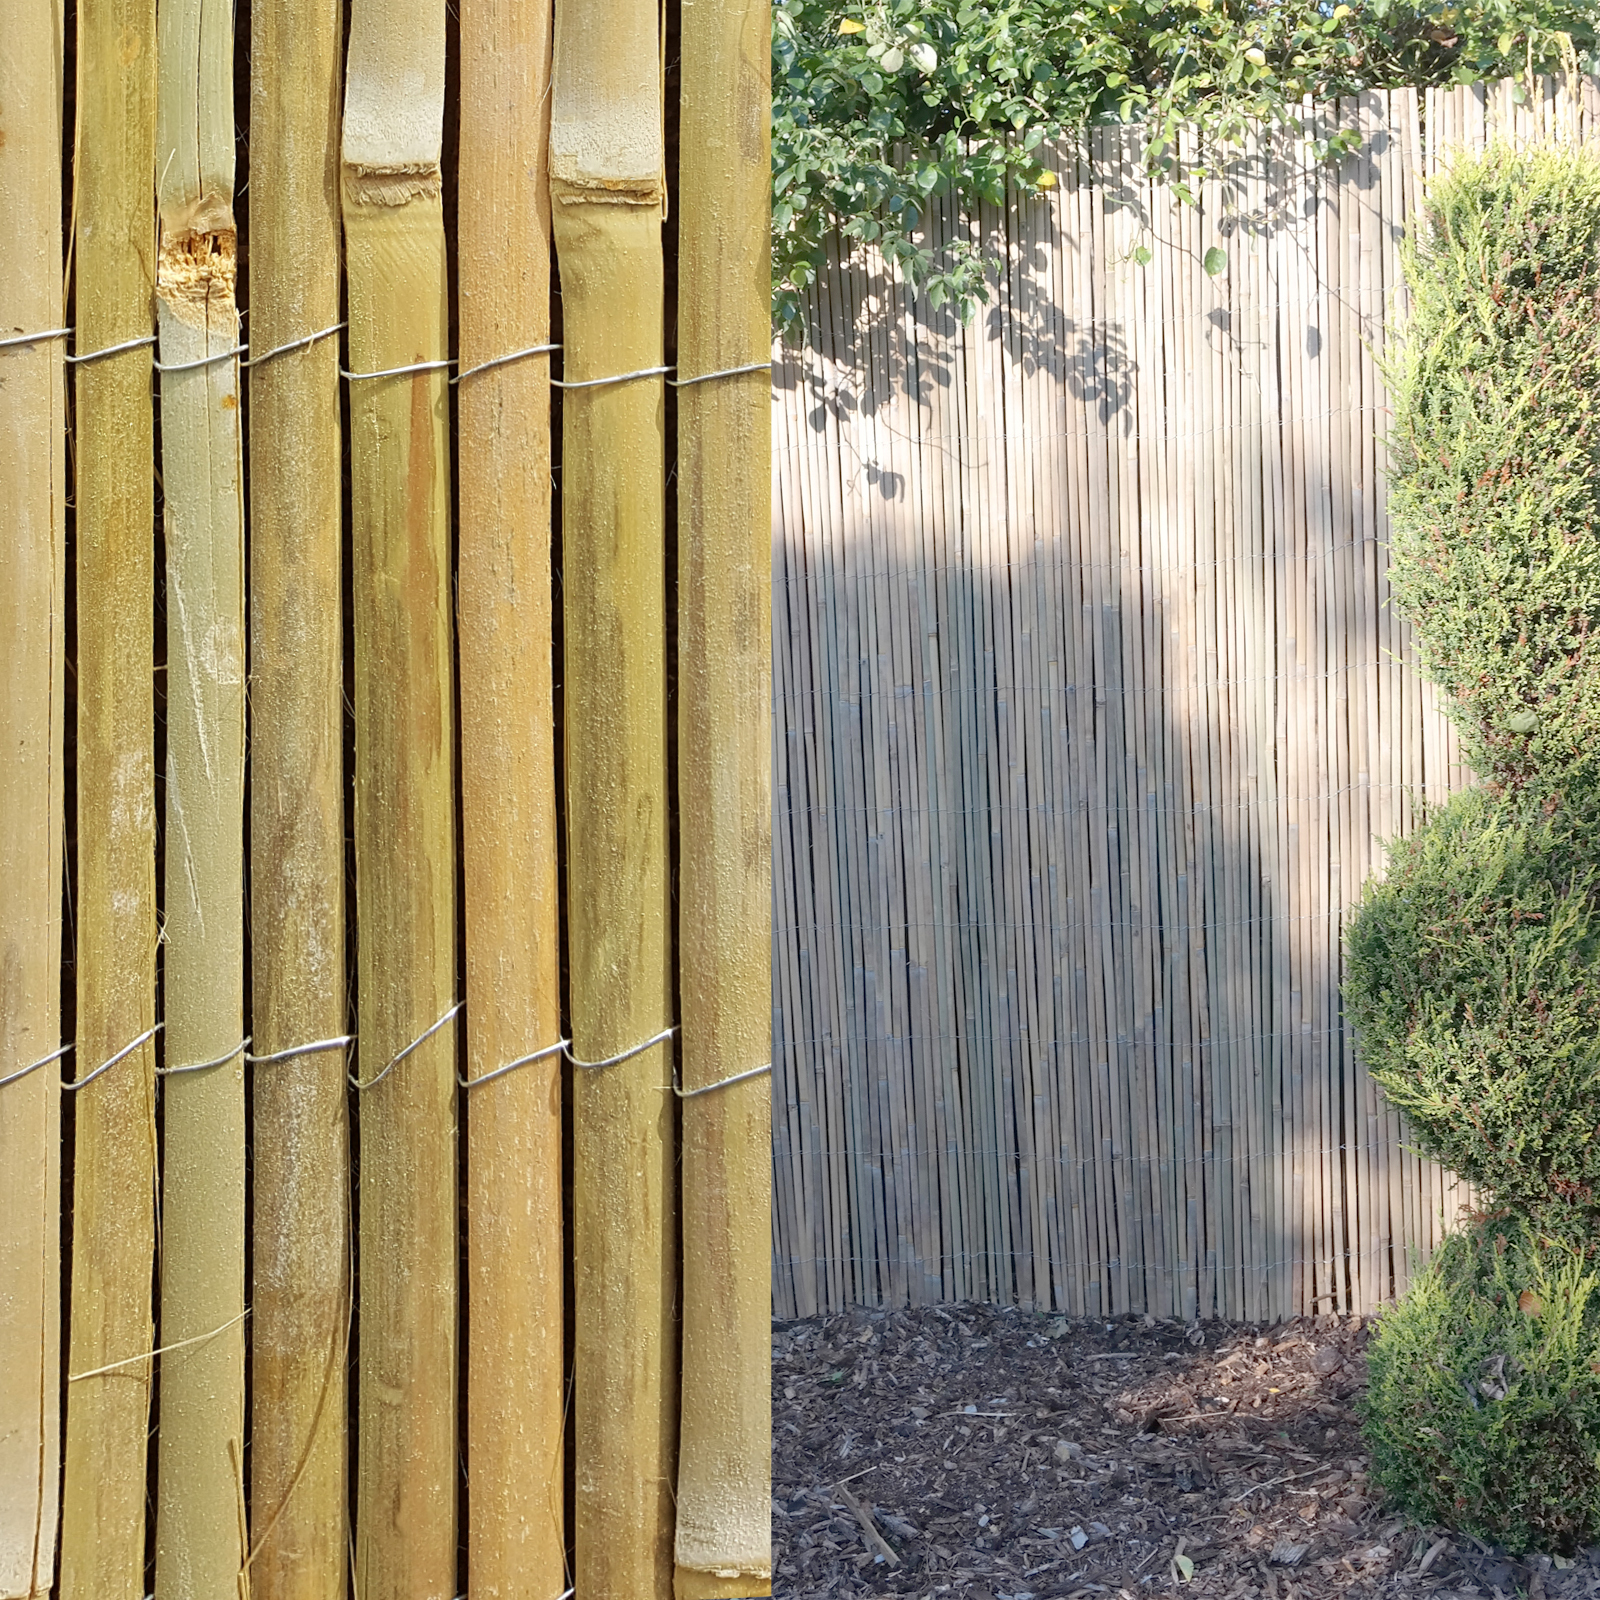 4m bamboo slat natural garden screening fencing fence Bamboo screens for outdoors